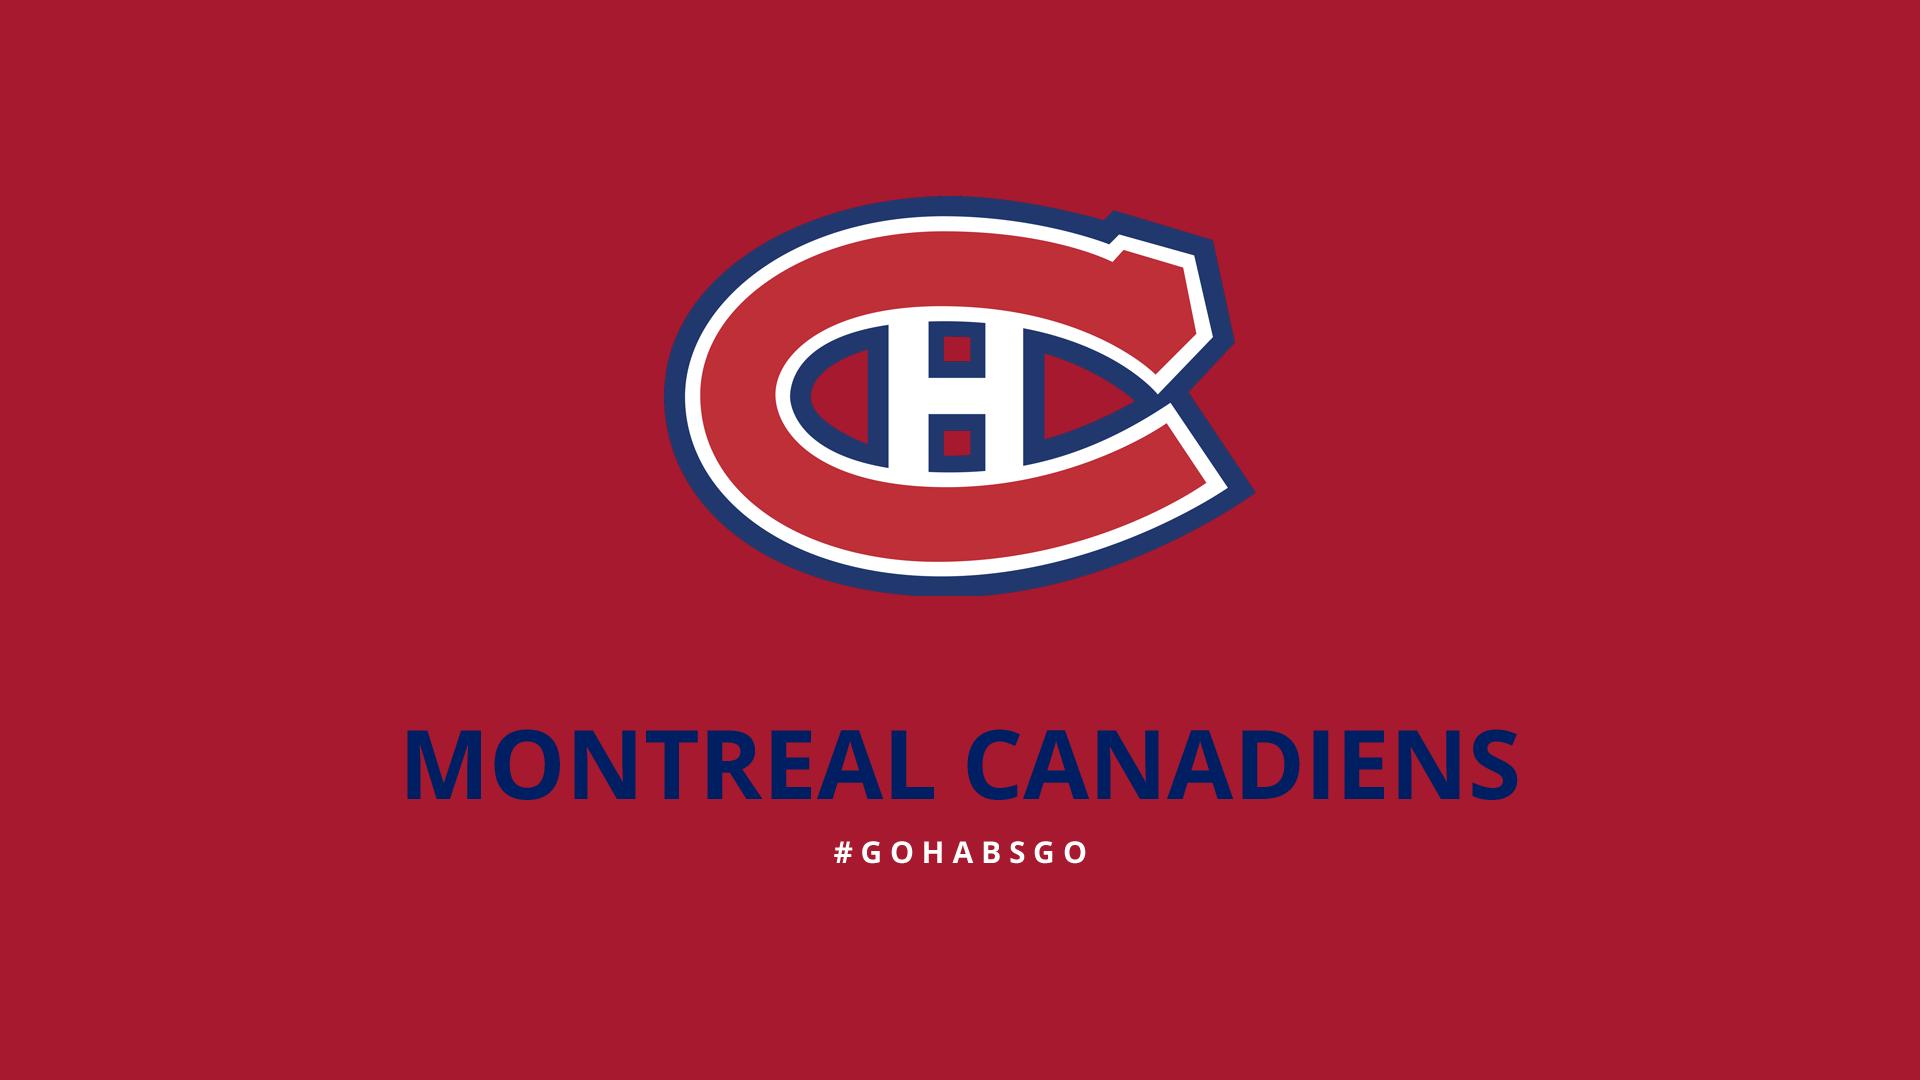 Minimalist Montreal Canadiens wallpaper by lfiore 1920x1080